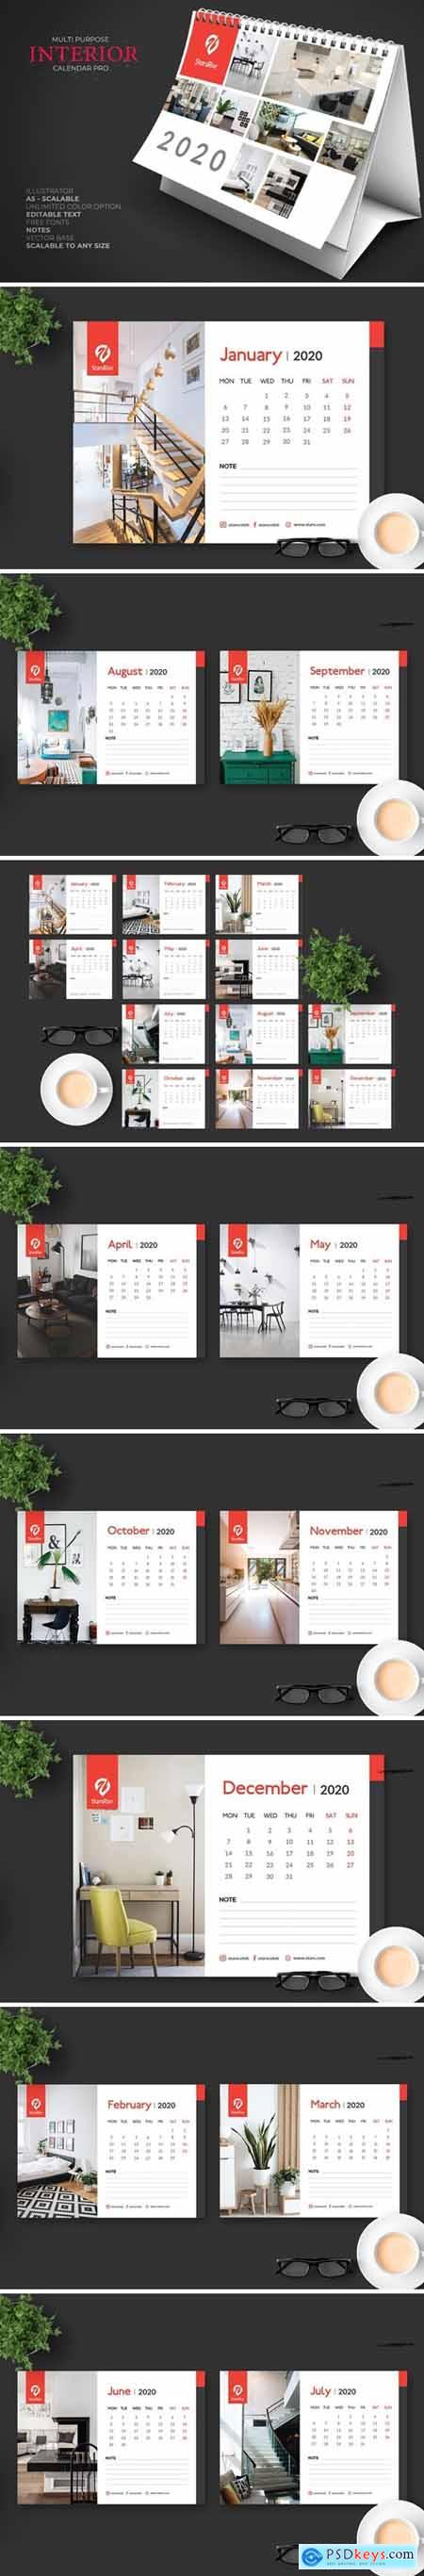 2020 Furniture-Interior Calendar Desk Pro